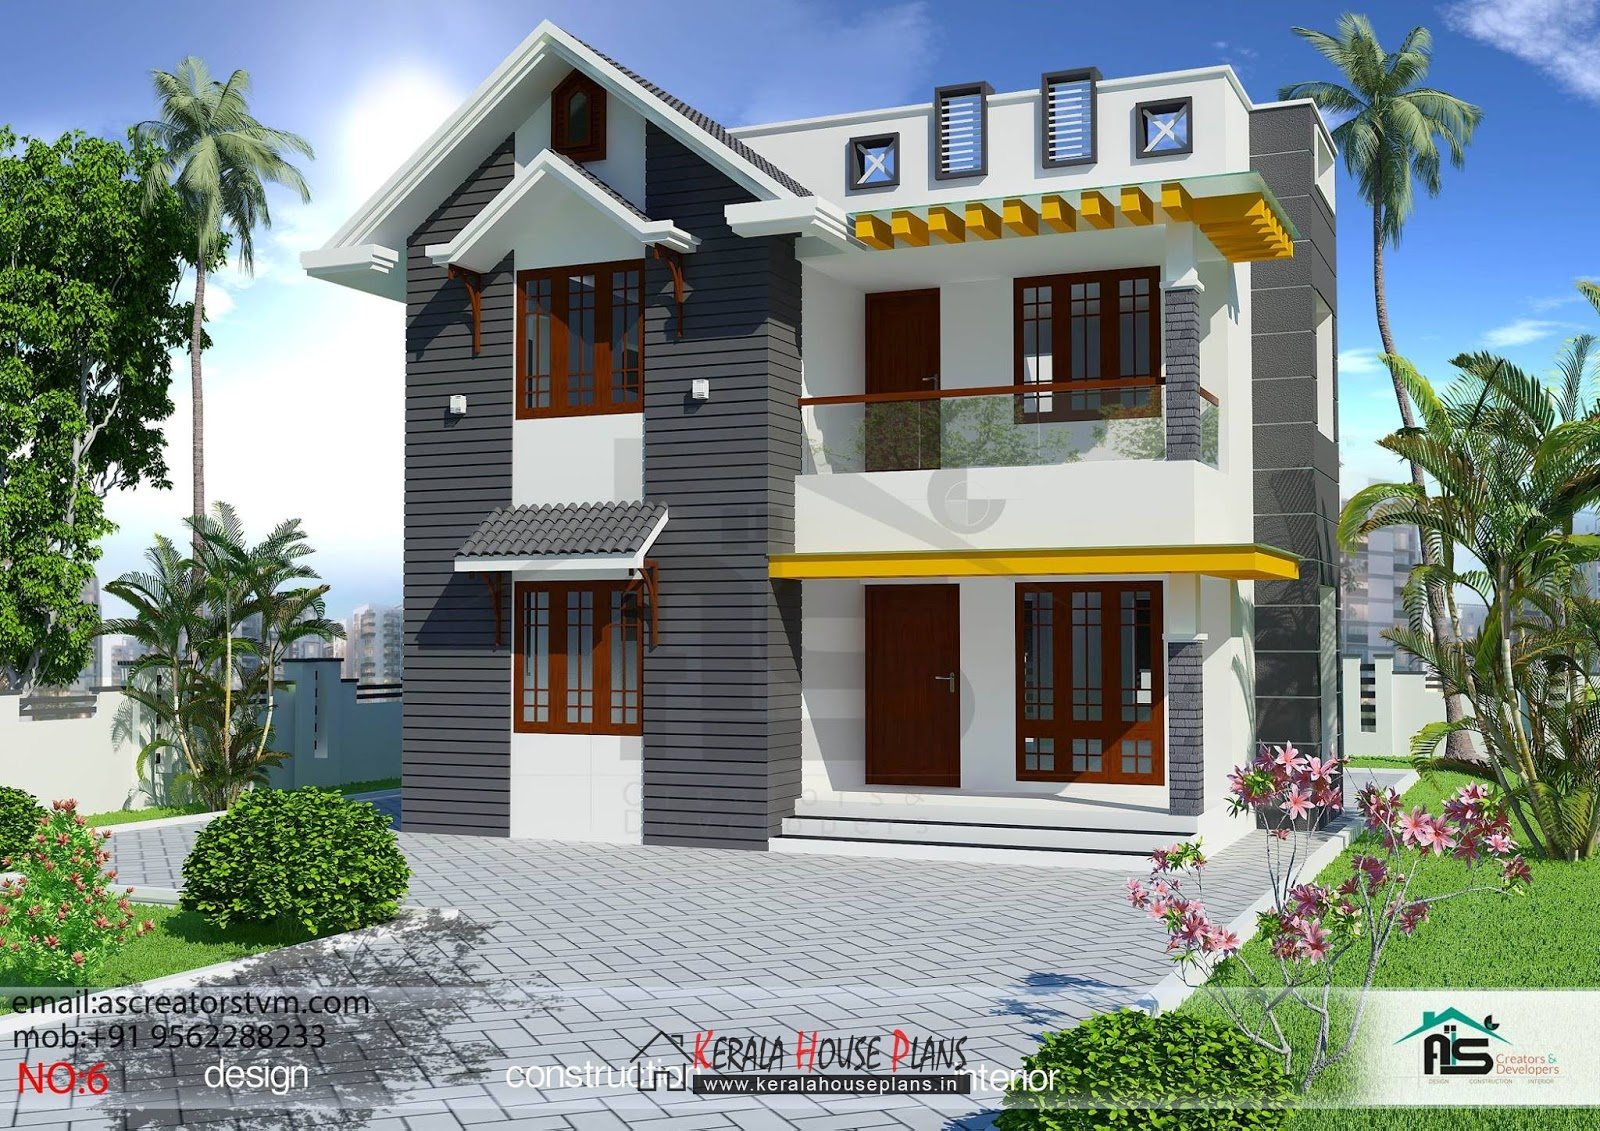 3 bedroom house plans in kerala double floor kerala for 3 bedroom house photos